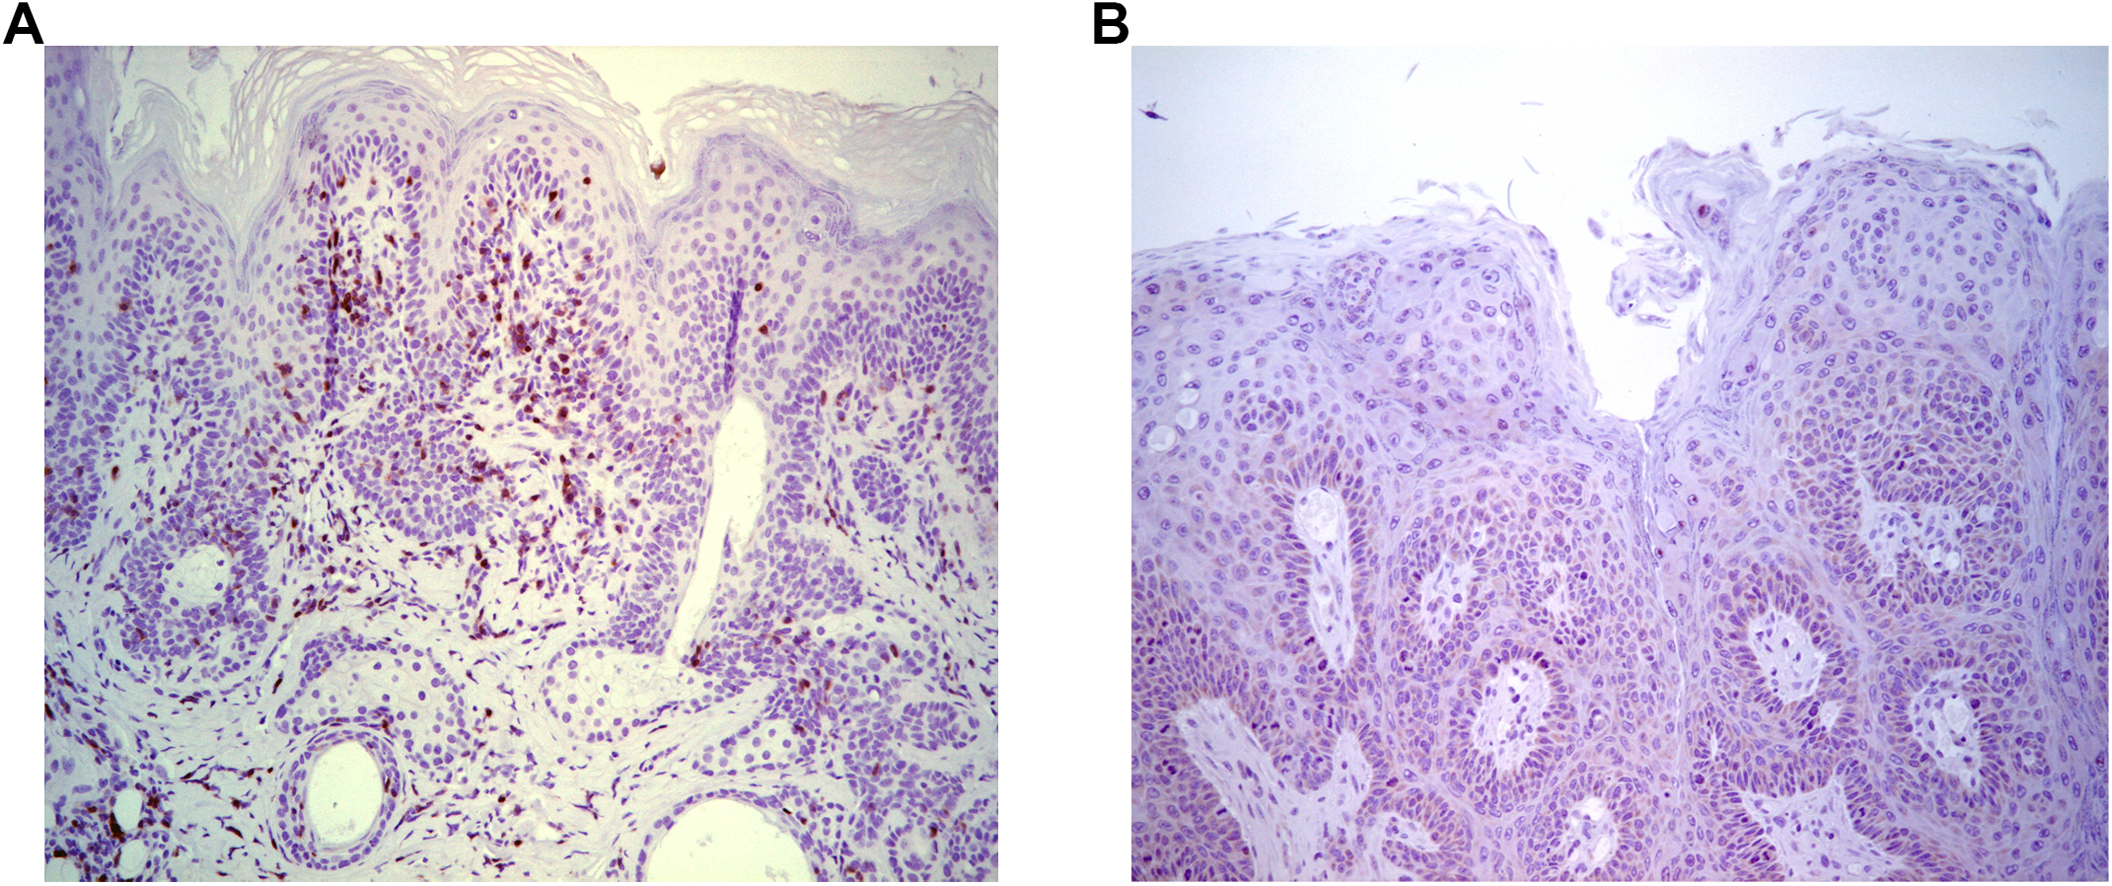 Infiltration of T cells into papilloma site associated with MusPV1 papilloma regression.